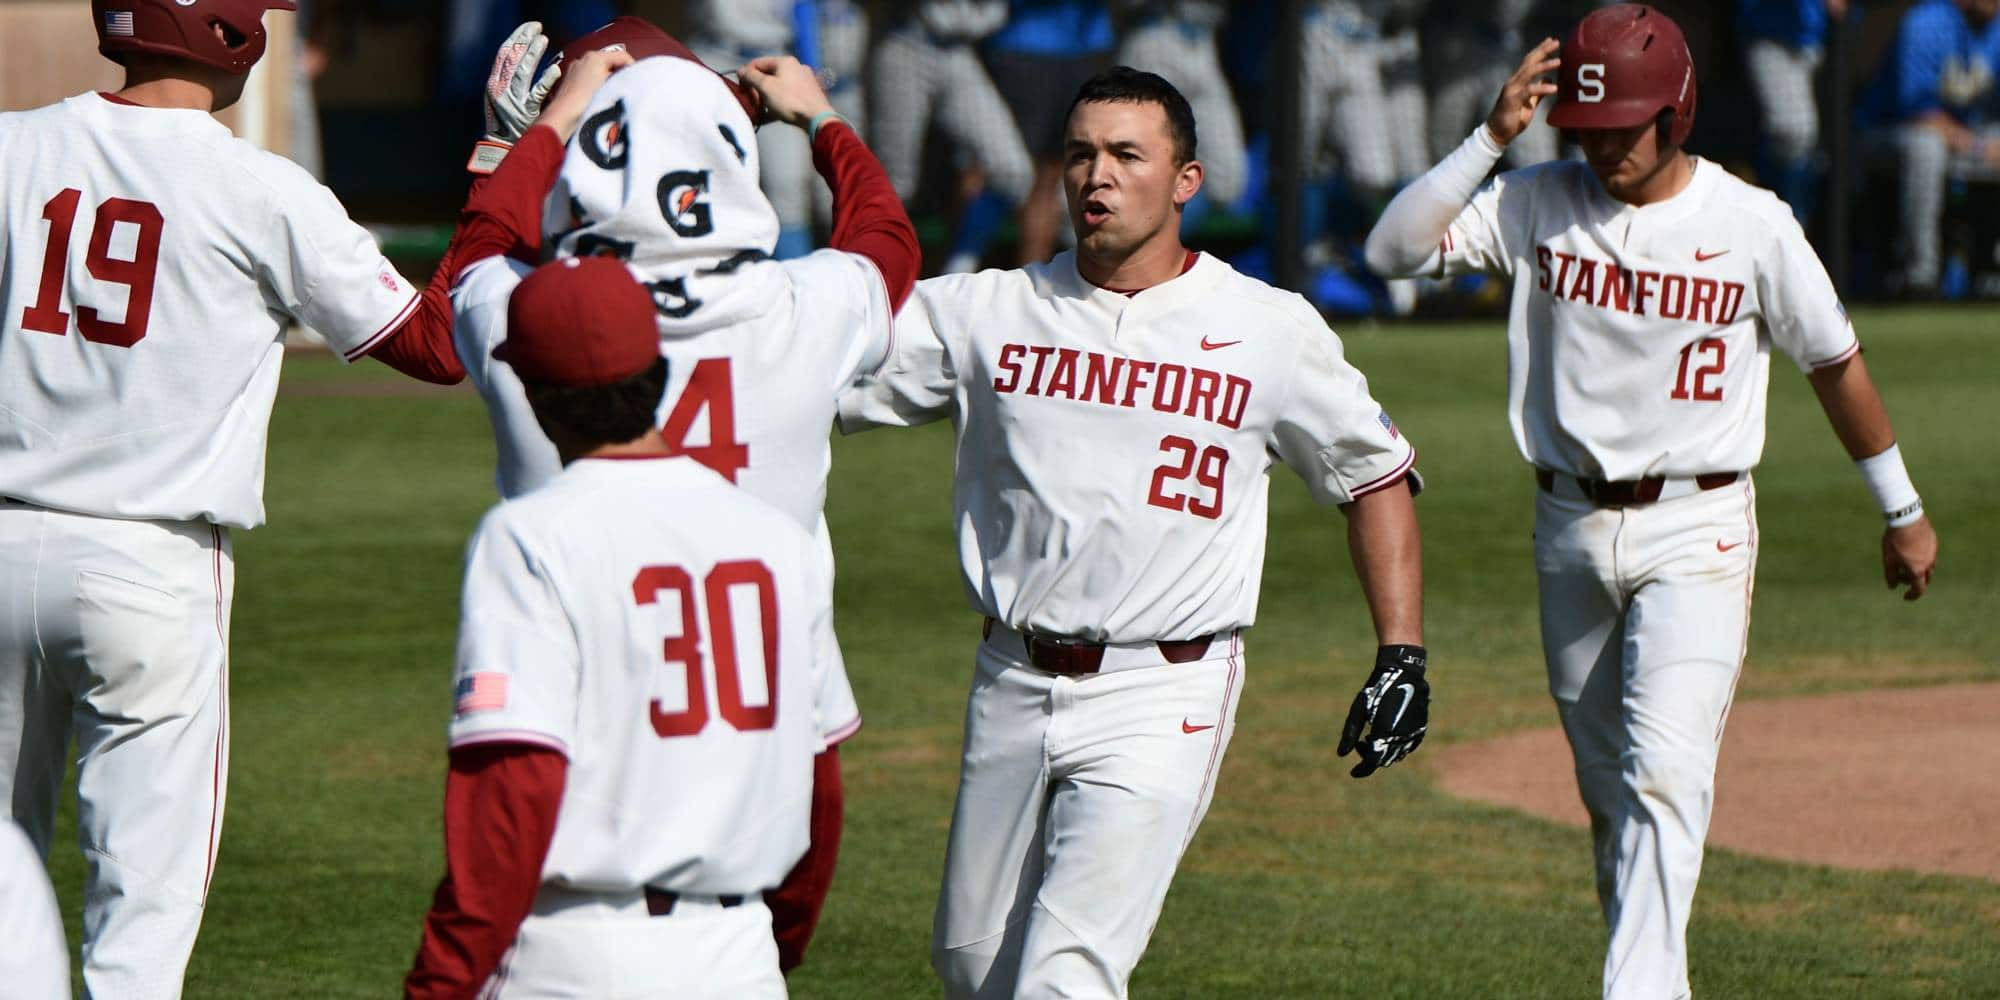 033213819 D1 Digest  Powerful Performances Headline Friday s Action • D1Baseball